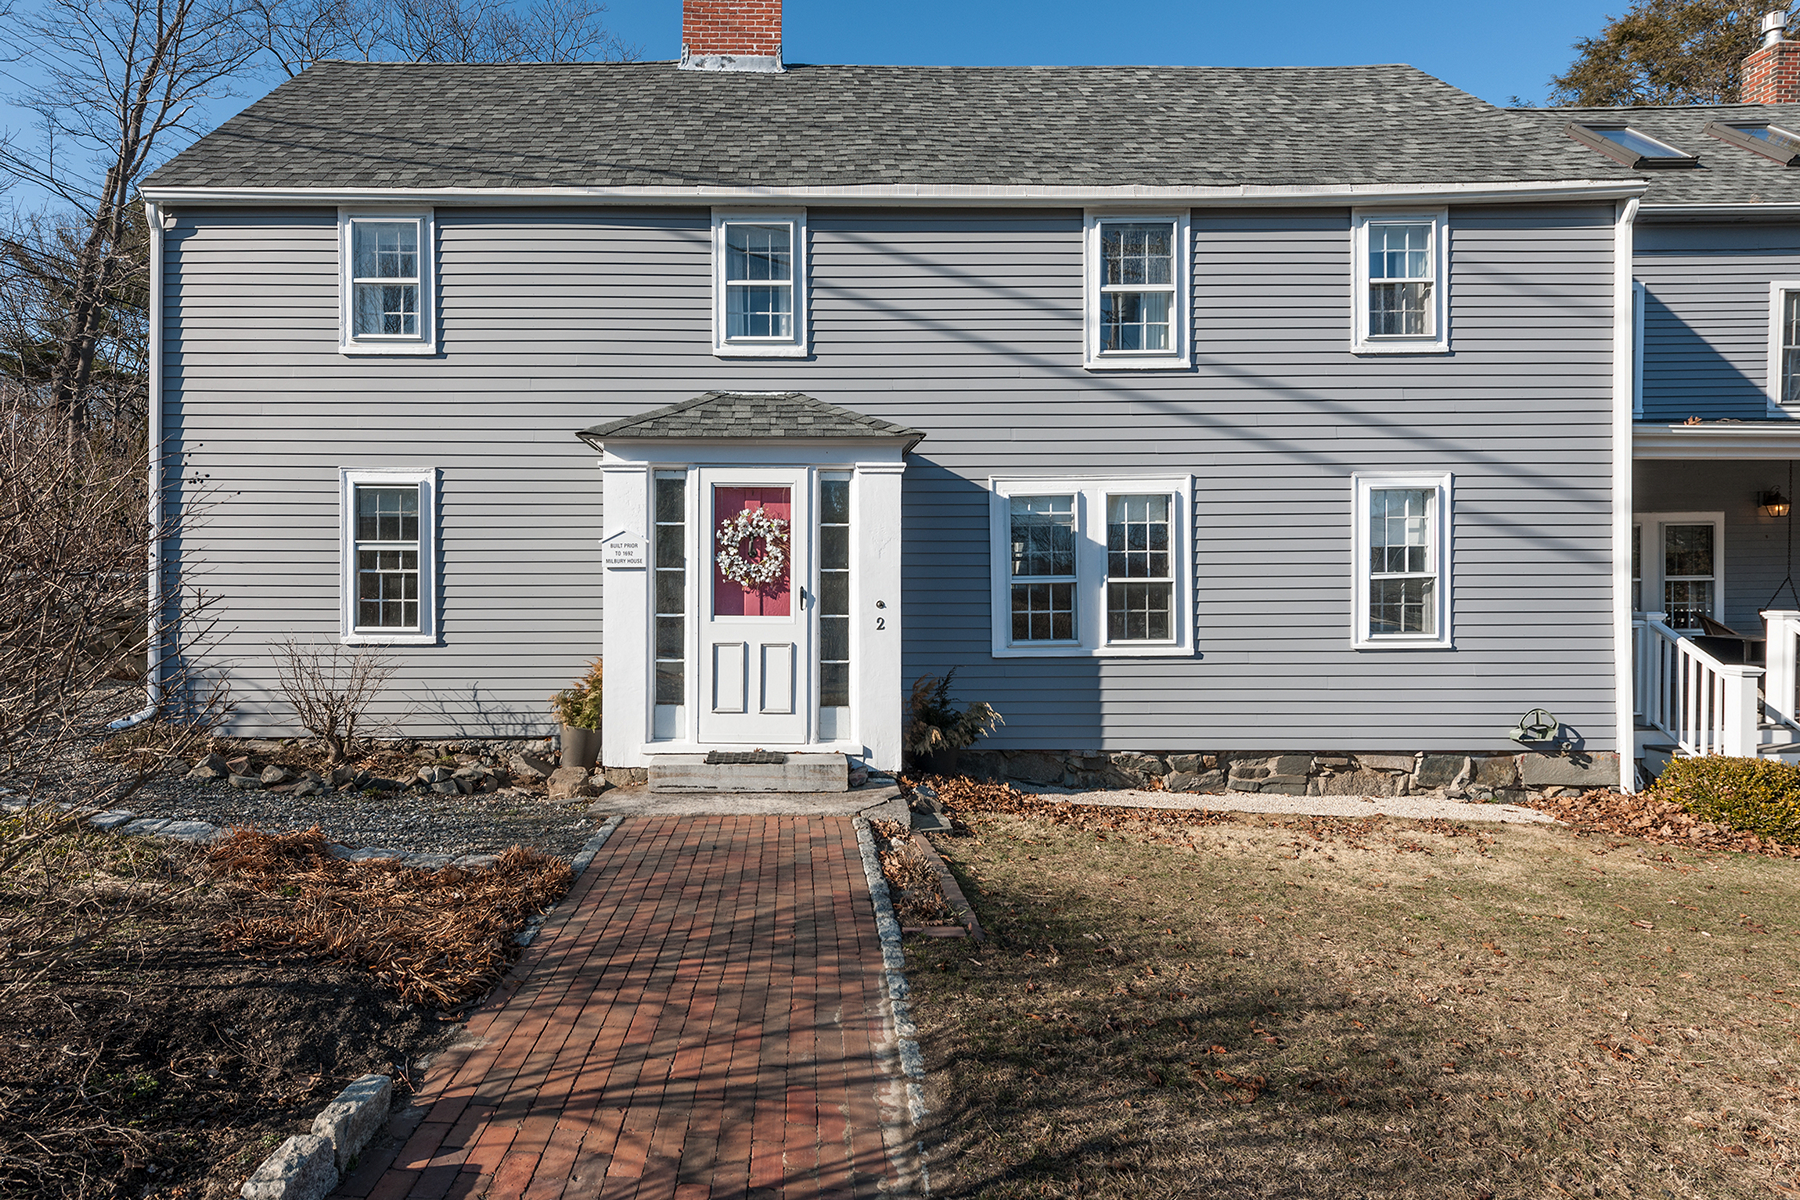 Multi-Family Home for Sale at Historic Duplex in York Harbor 2 Norwood Farms Road York, Maine, 03911 United States